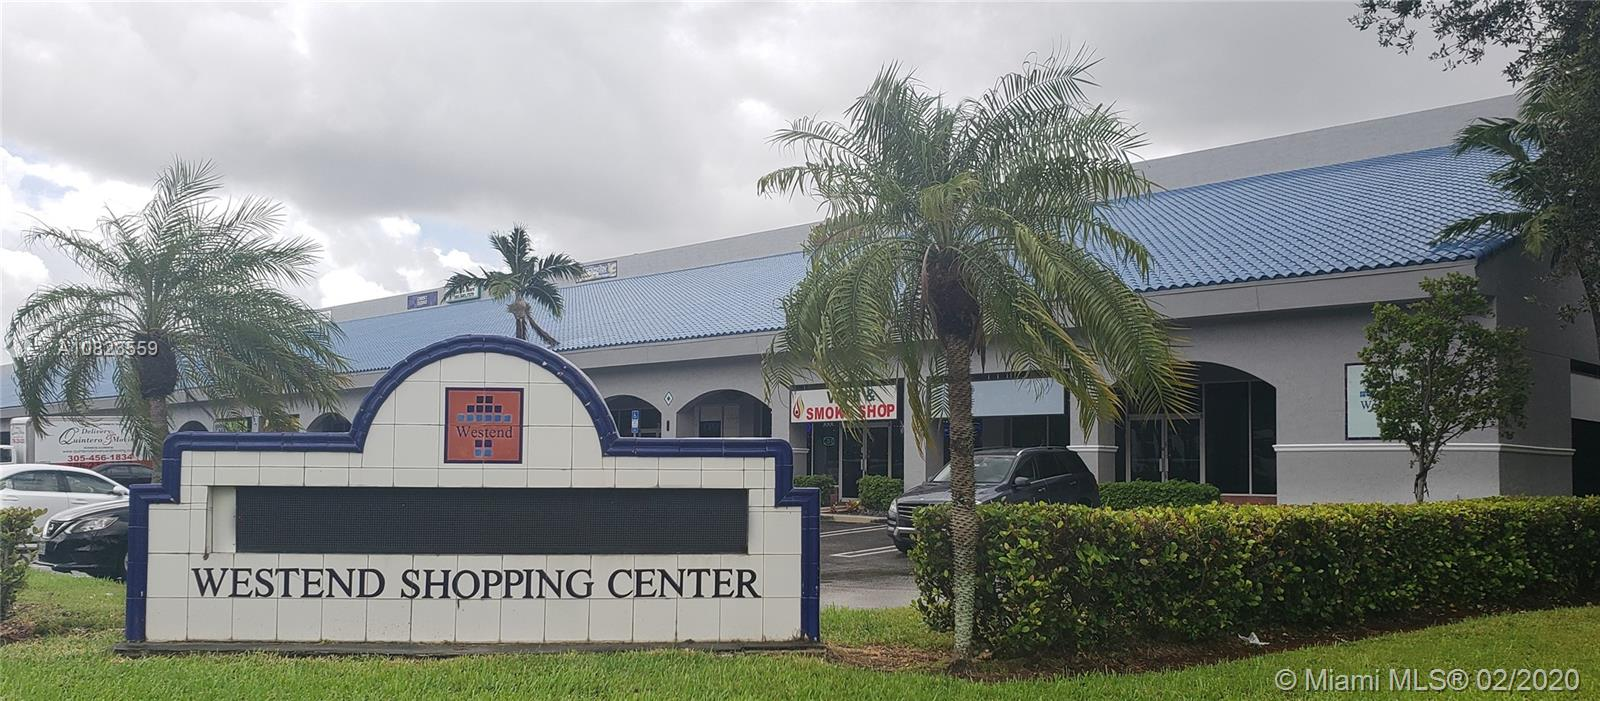 2600 NW 87th Ave # 21, Doral, Florida 33172, ,Commercial Sale,For Sale,2600 NW 87th Ave # 21,A10823559